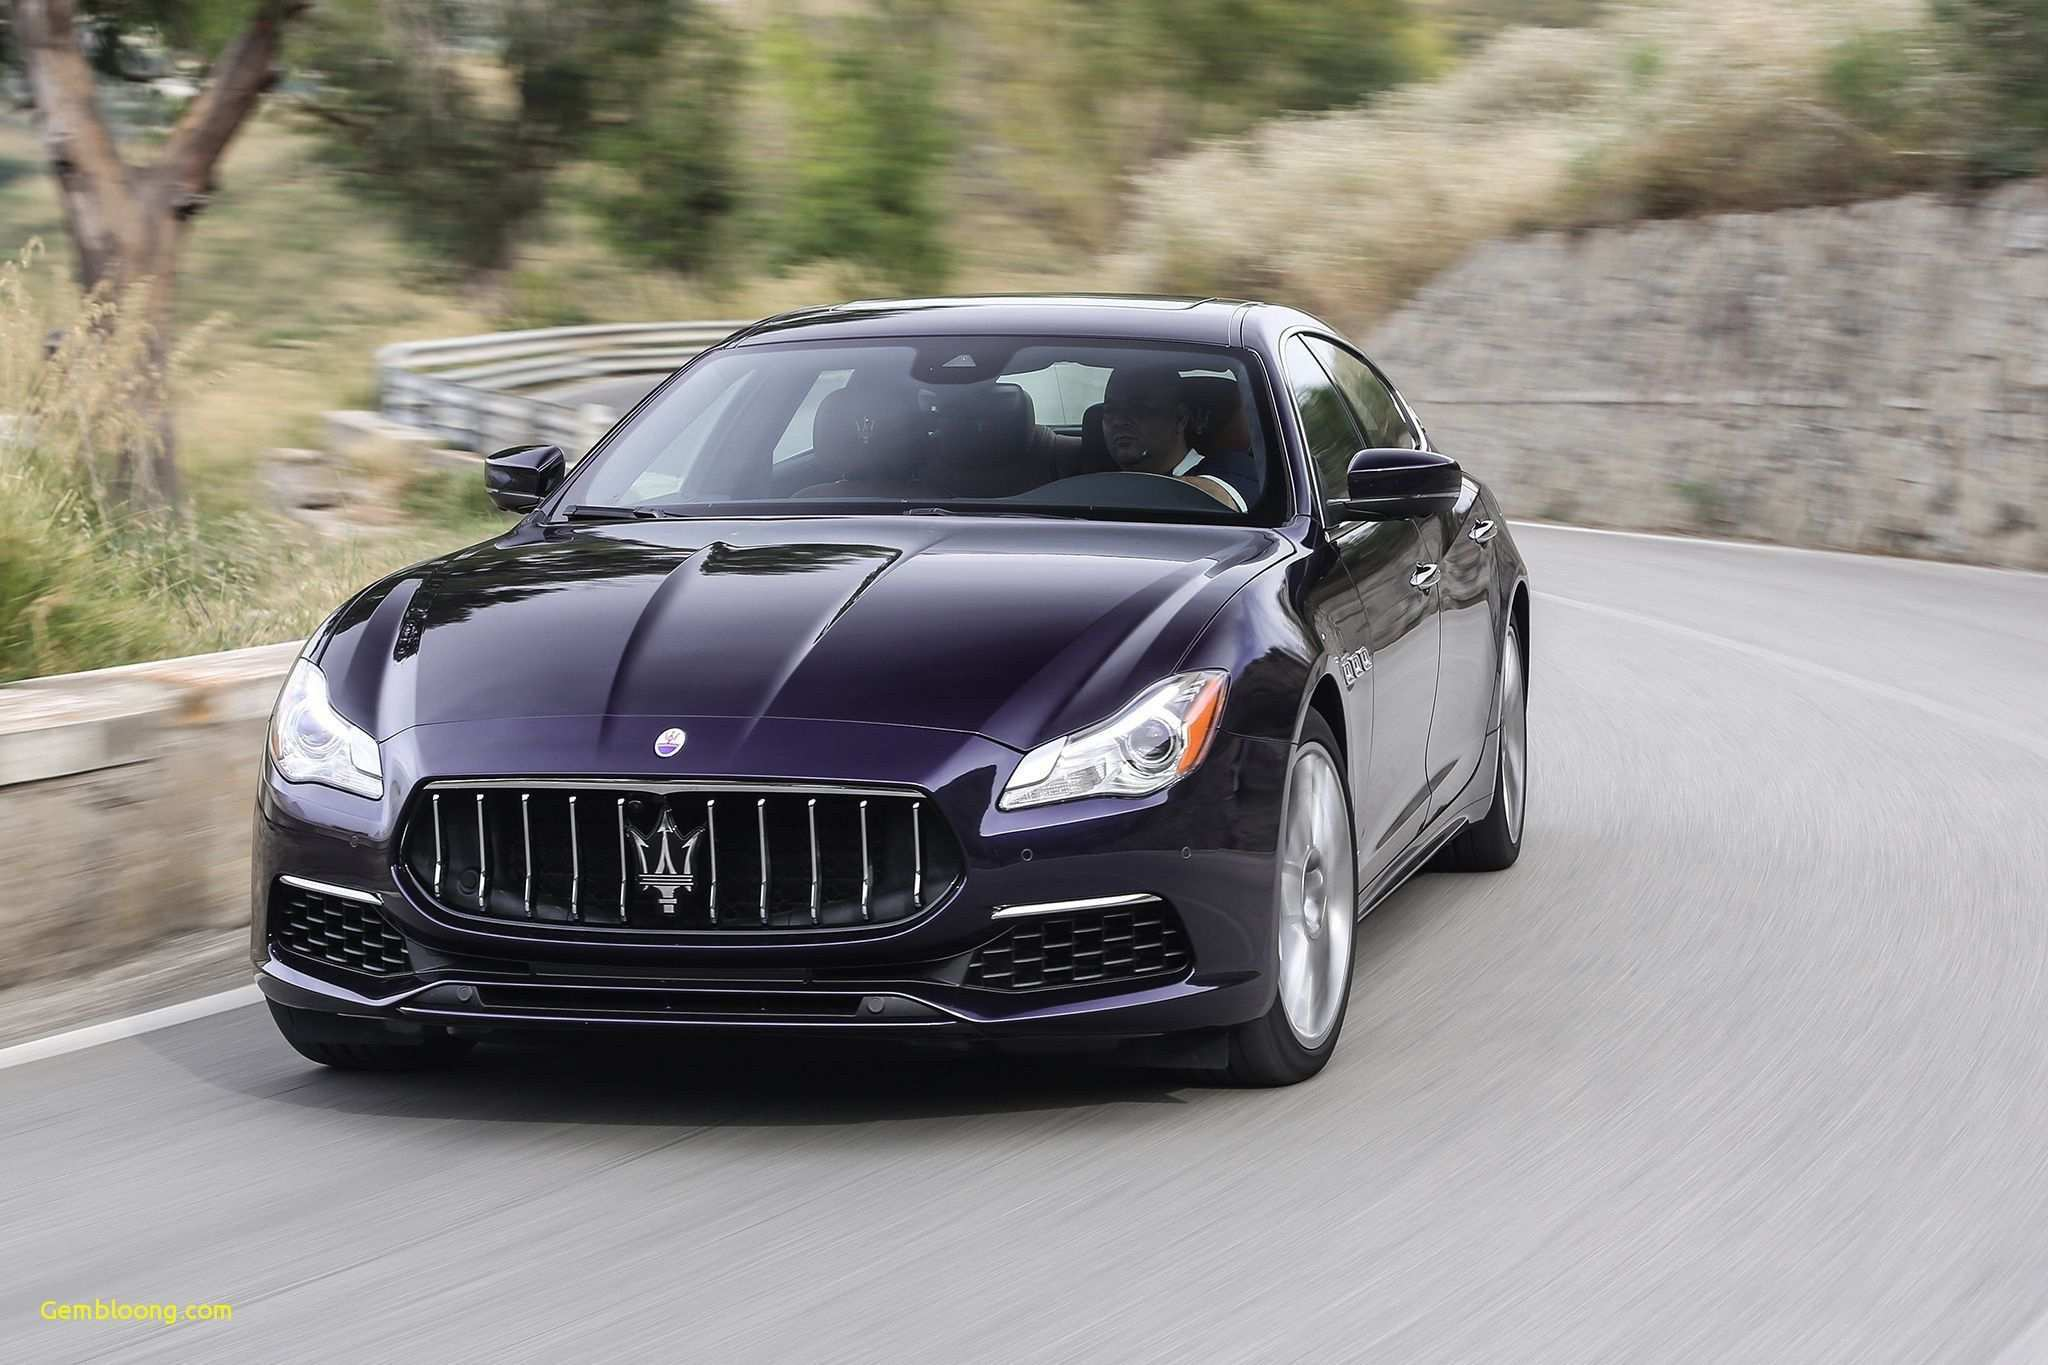 37 The Best 2020 Maserati Quattroportes Picture